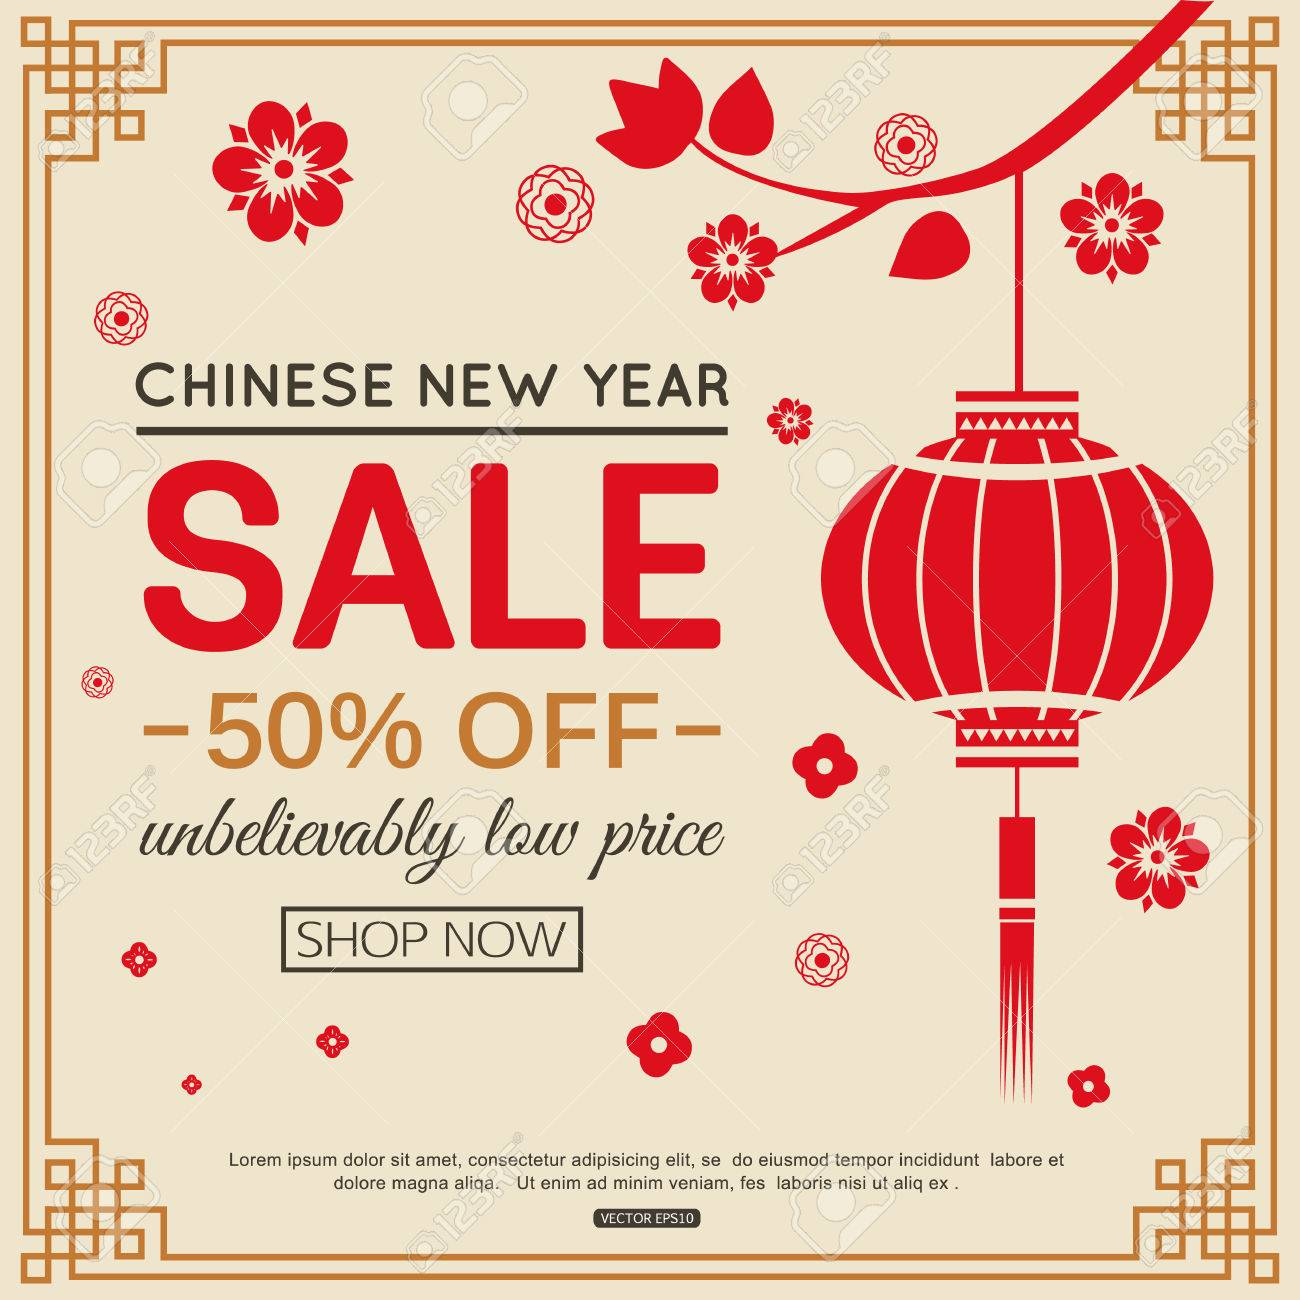 chinese new year sale banner design with paper lantern for online shopping tree branch and